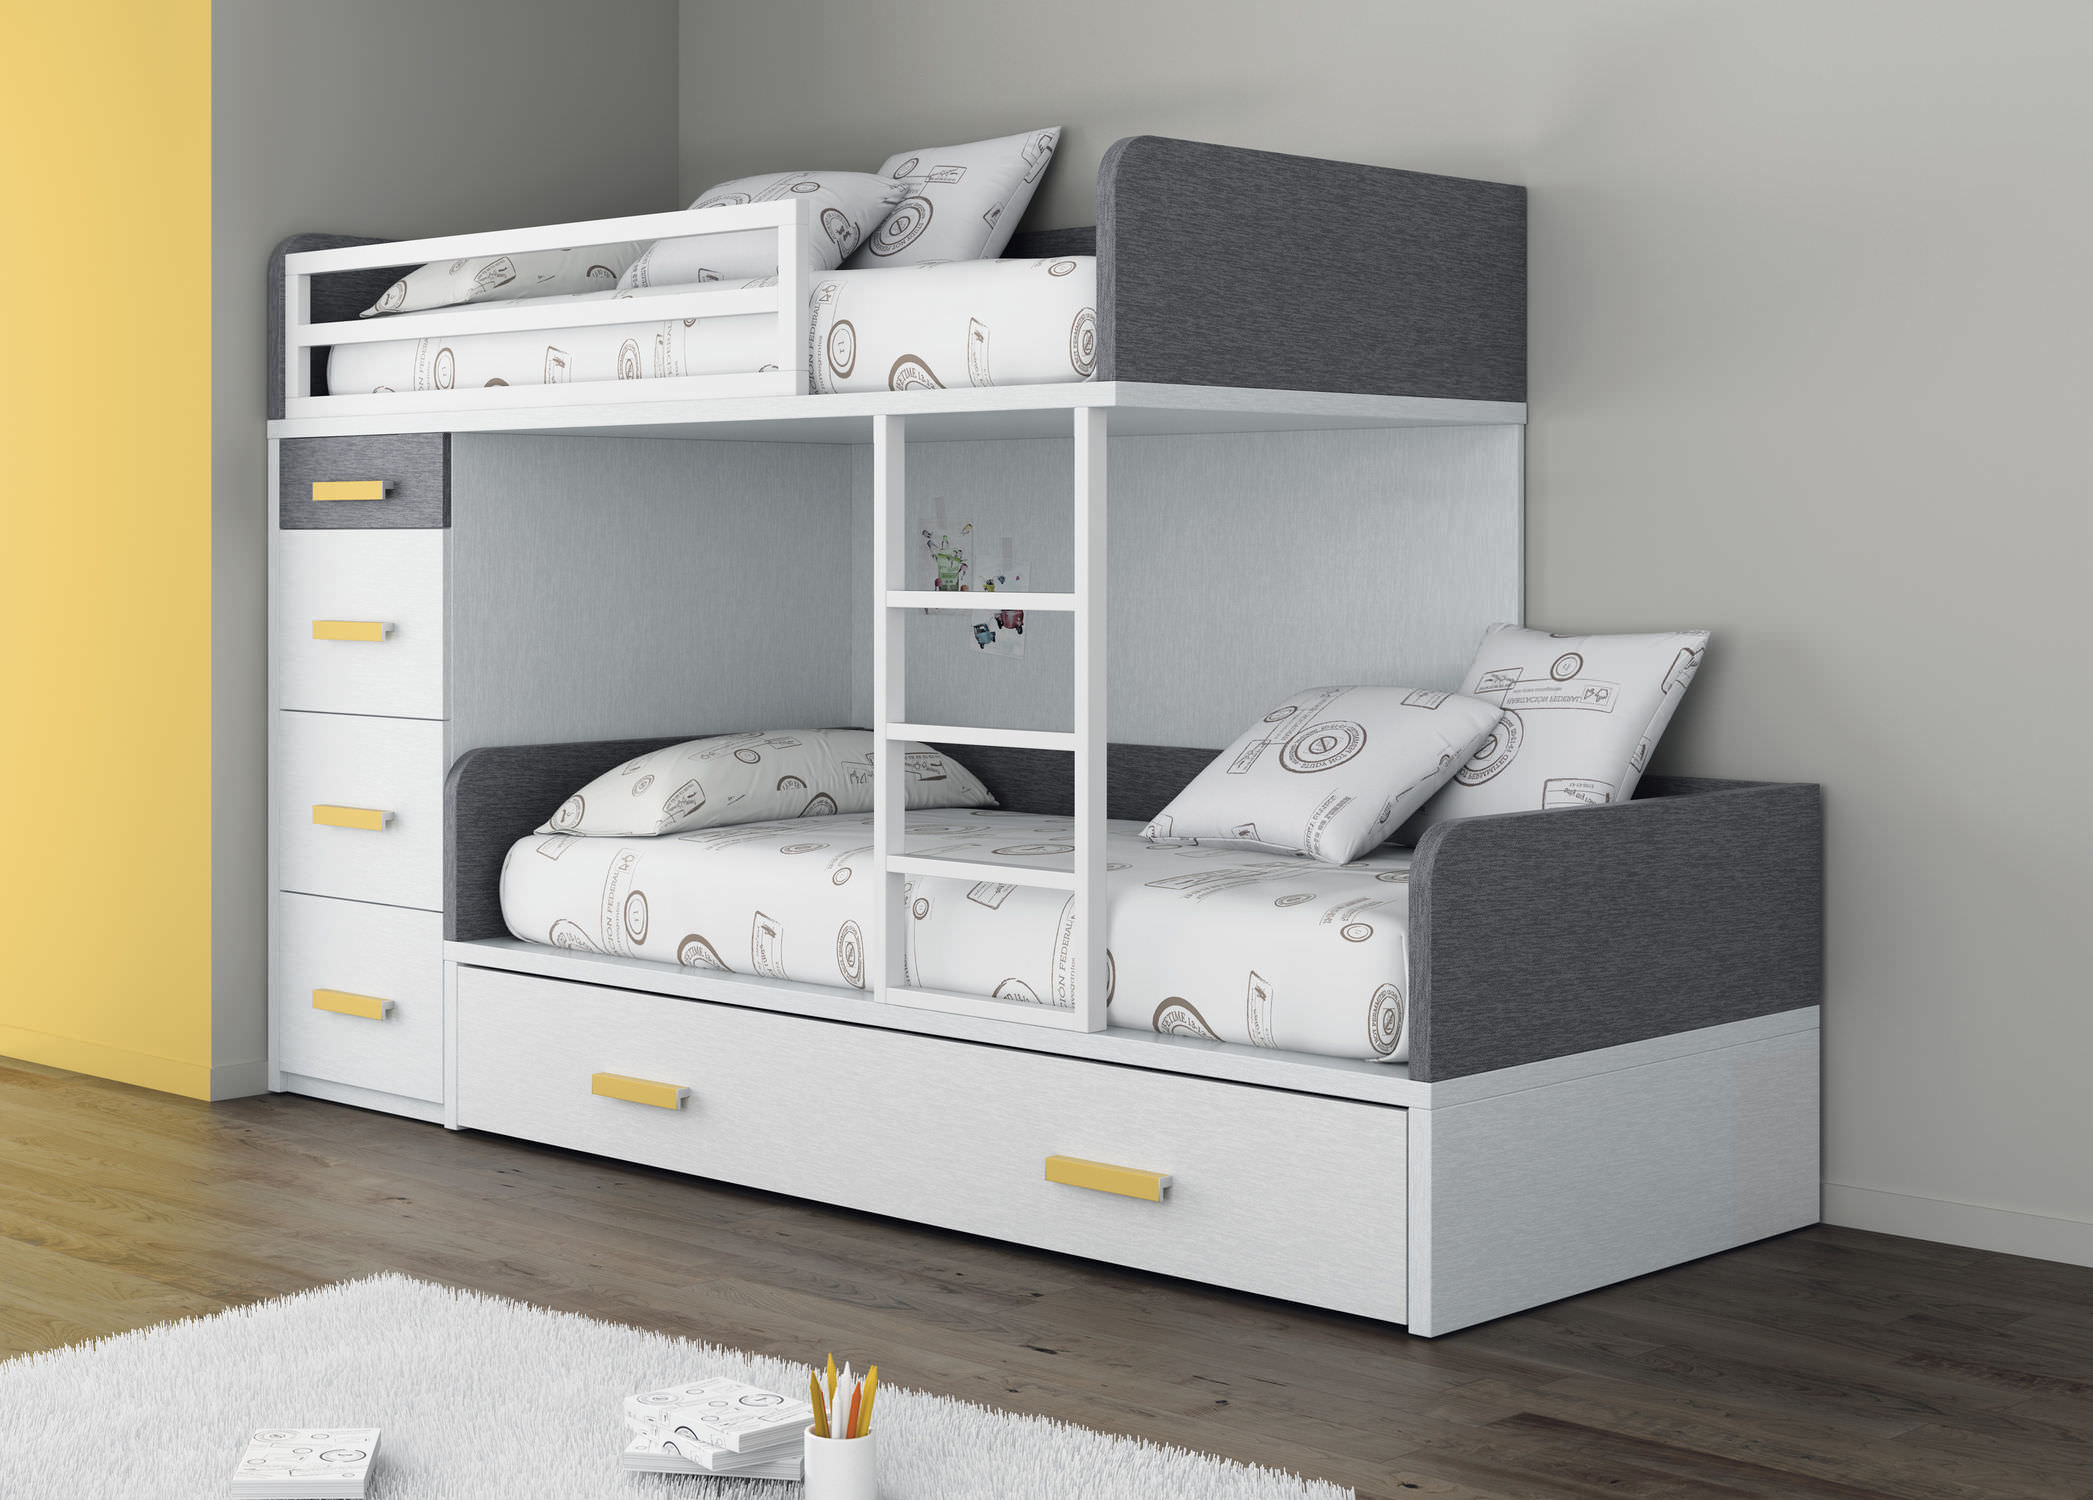 Lit Superposé Simple Contemporain Pour Enfant Unisexe